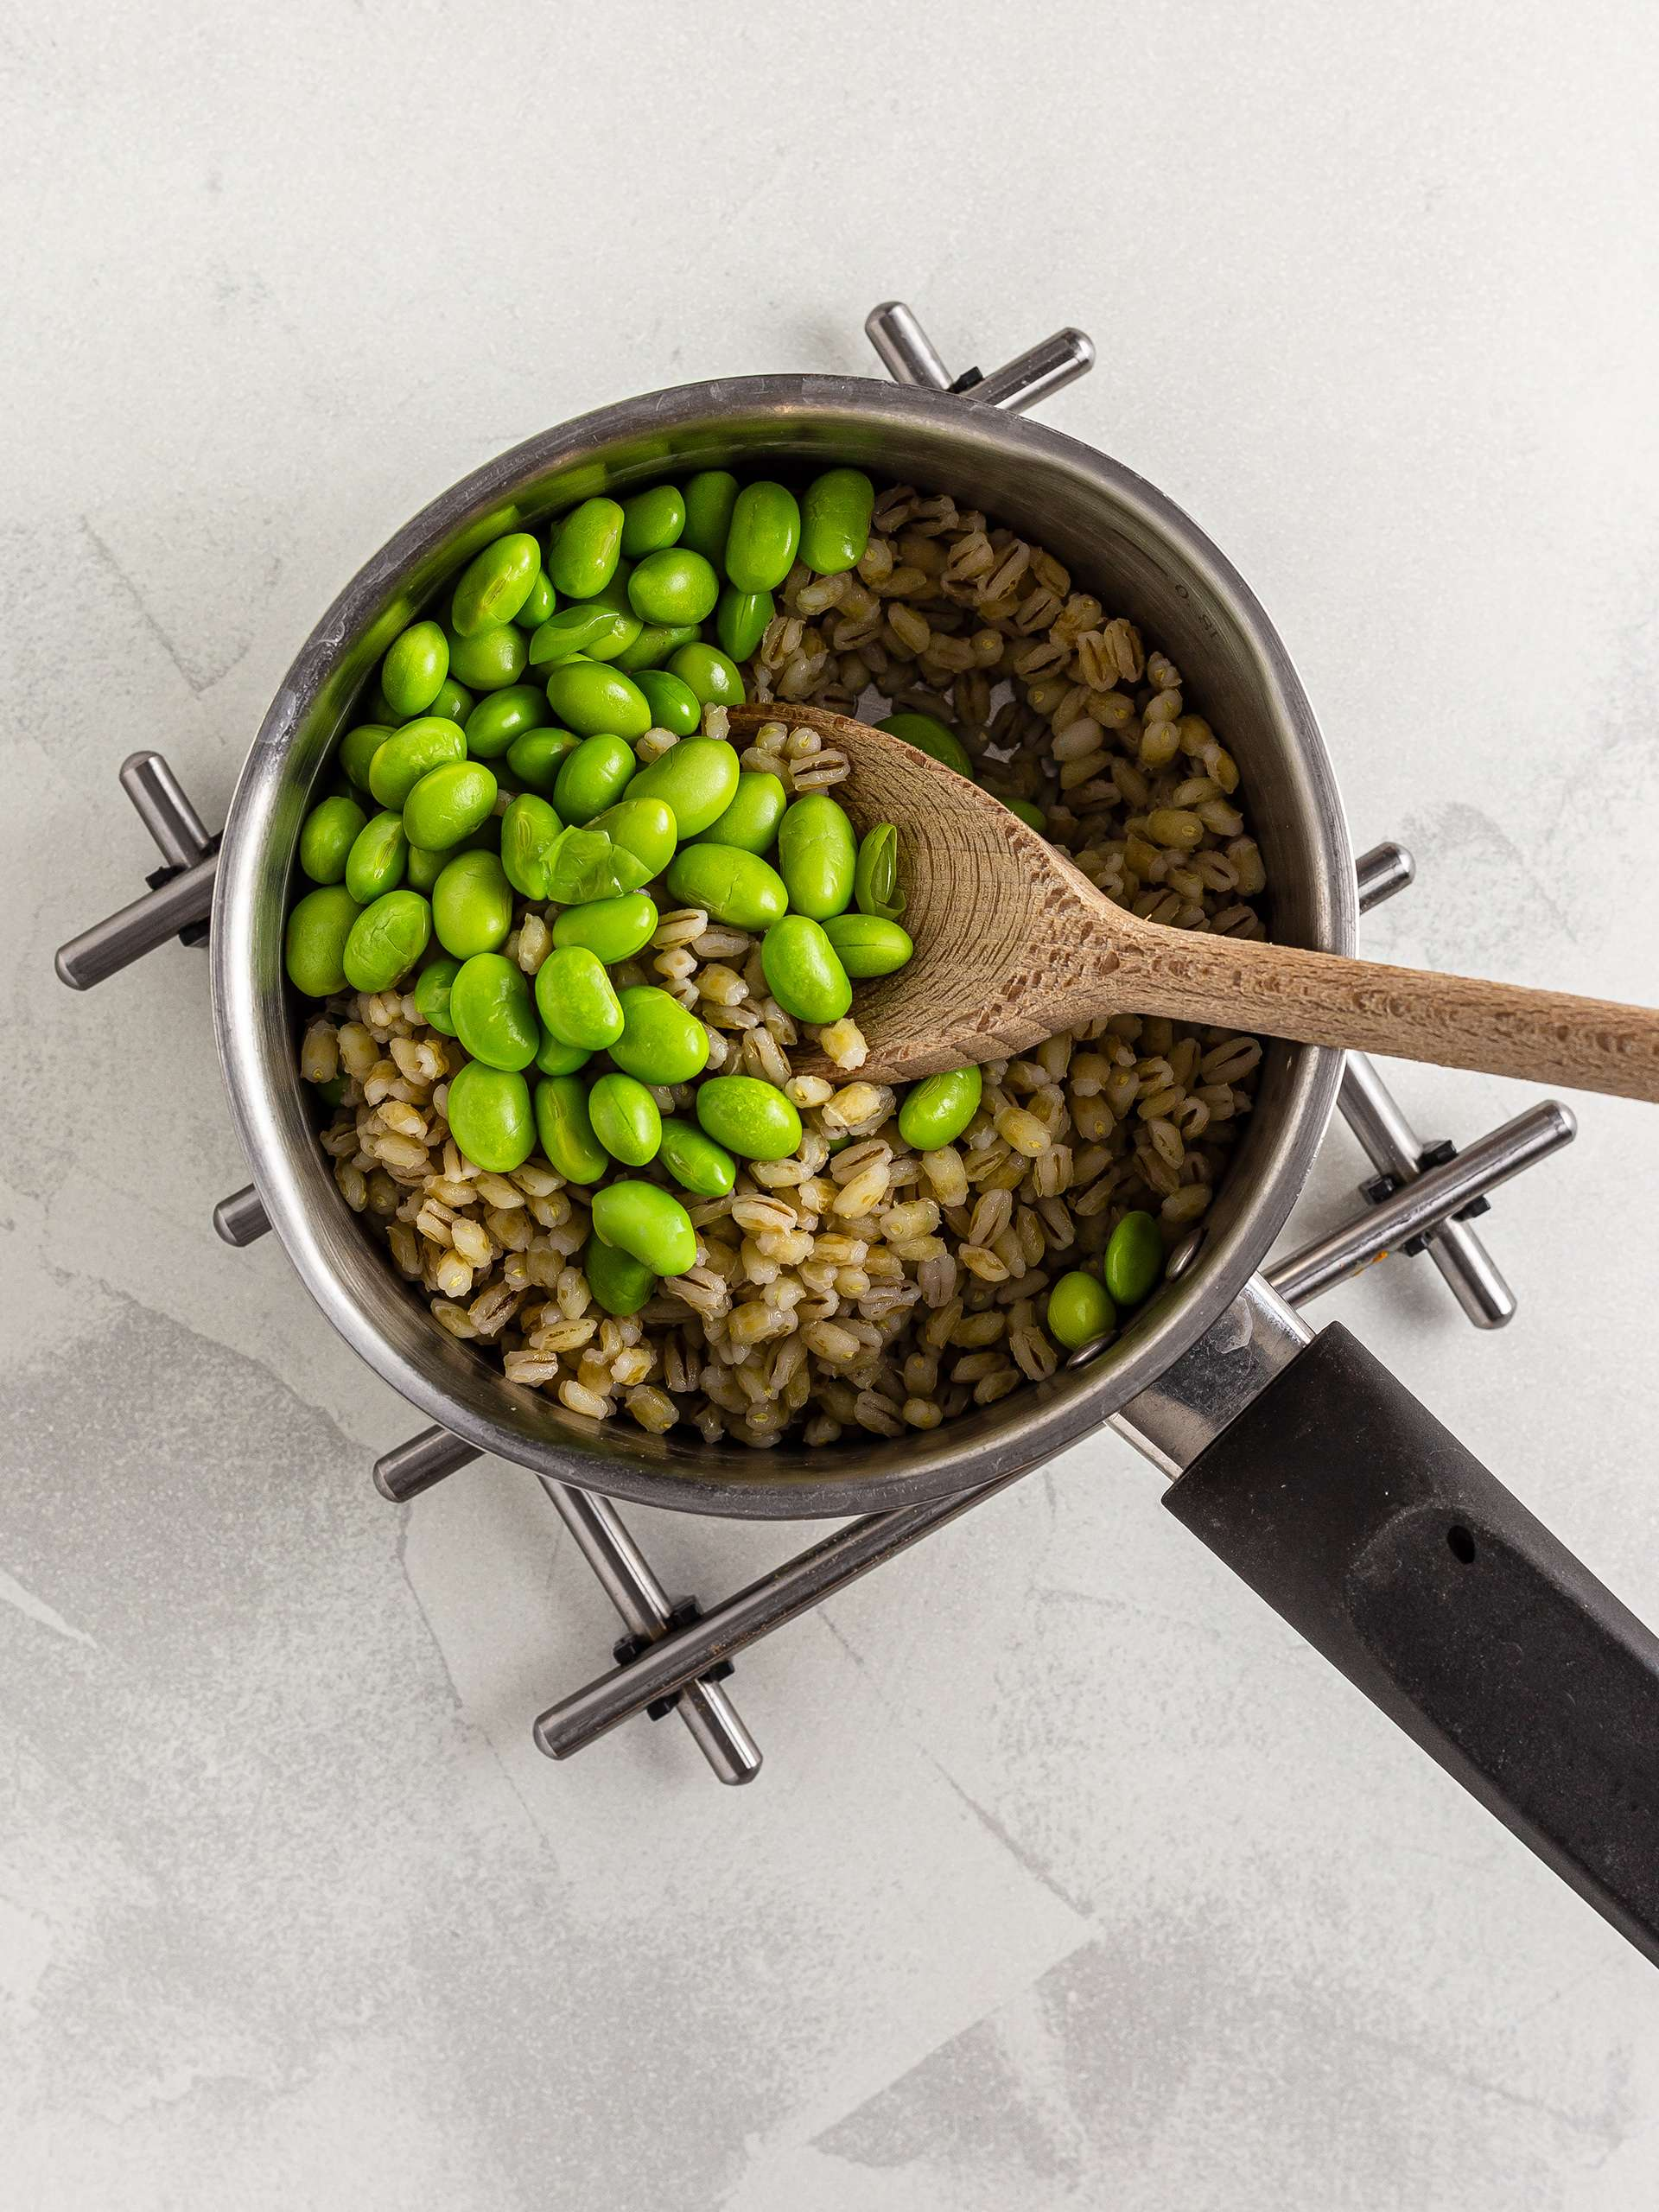 Cooked edamame beans with barley in a pot